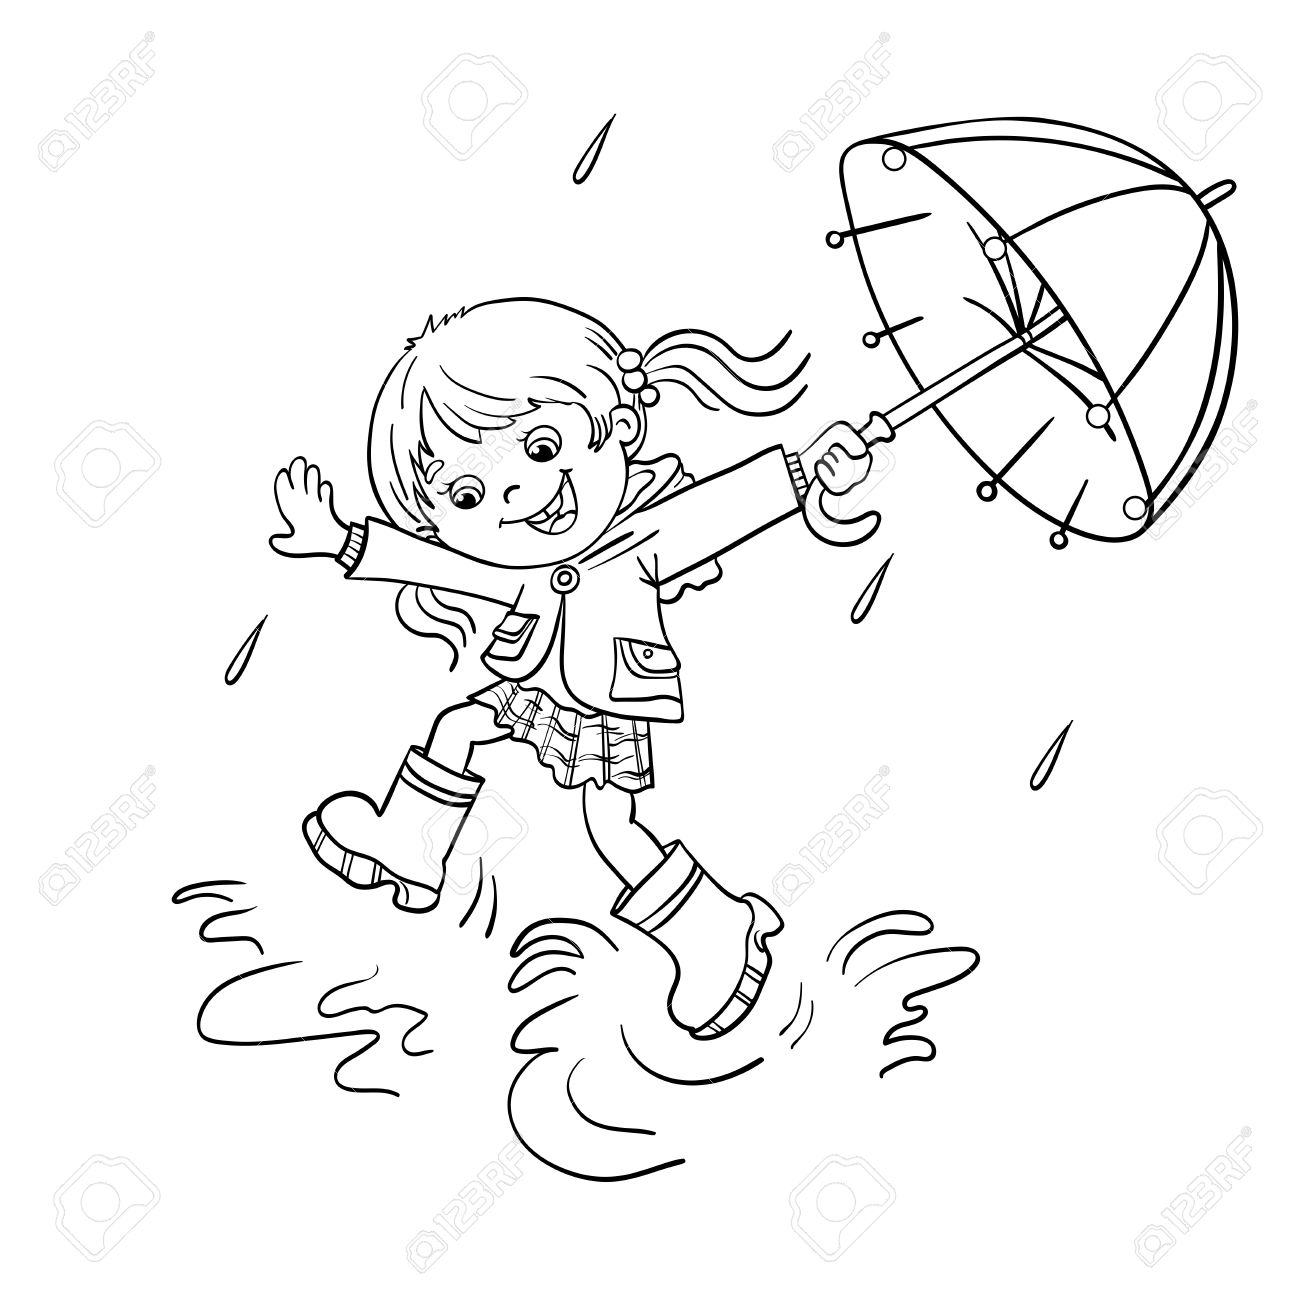 Coloring Page Outline Of A Cartoon Joyful Girl Jumping In The General Jumping Coloring Books